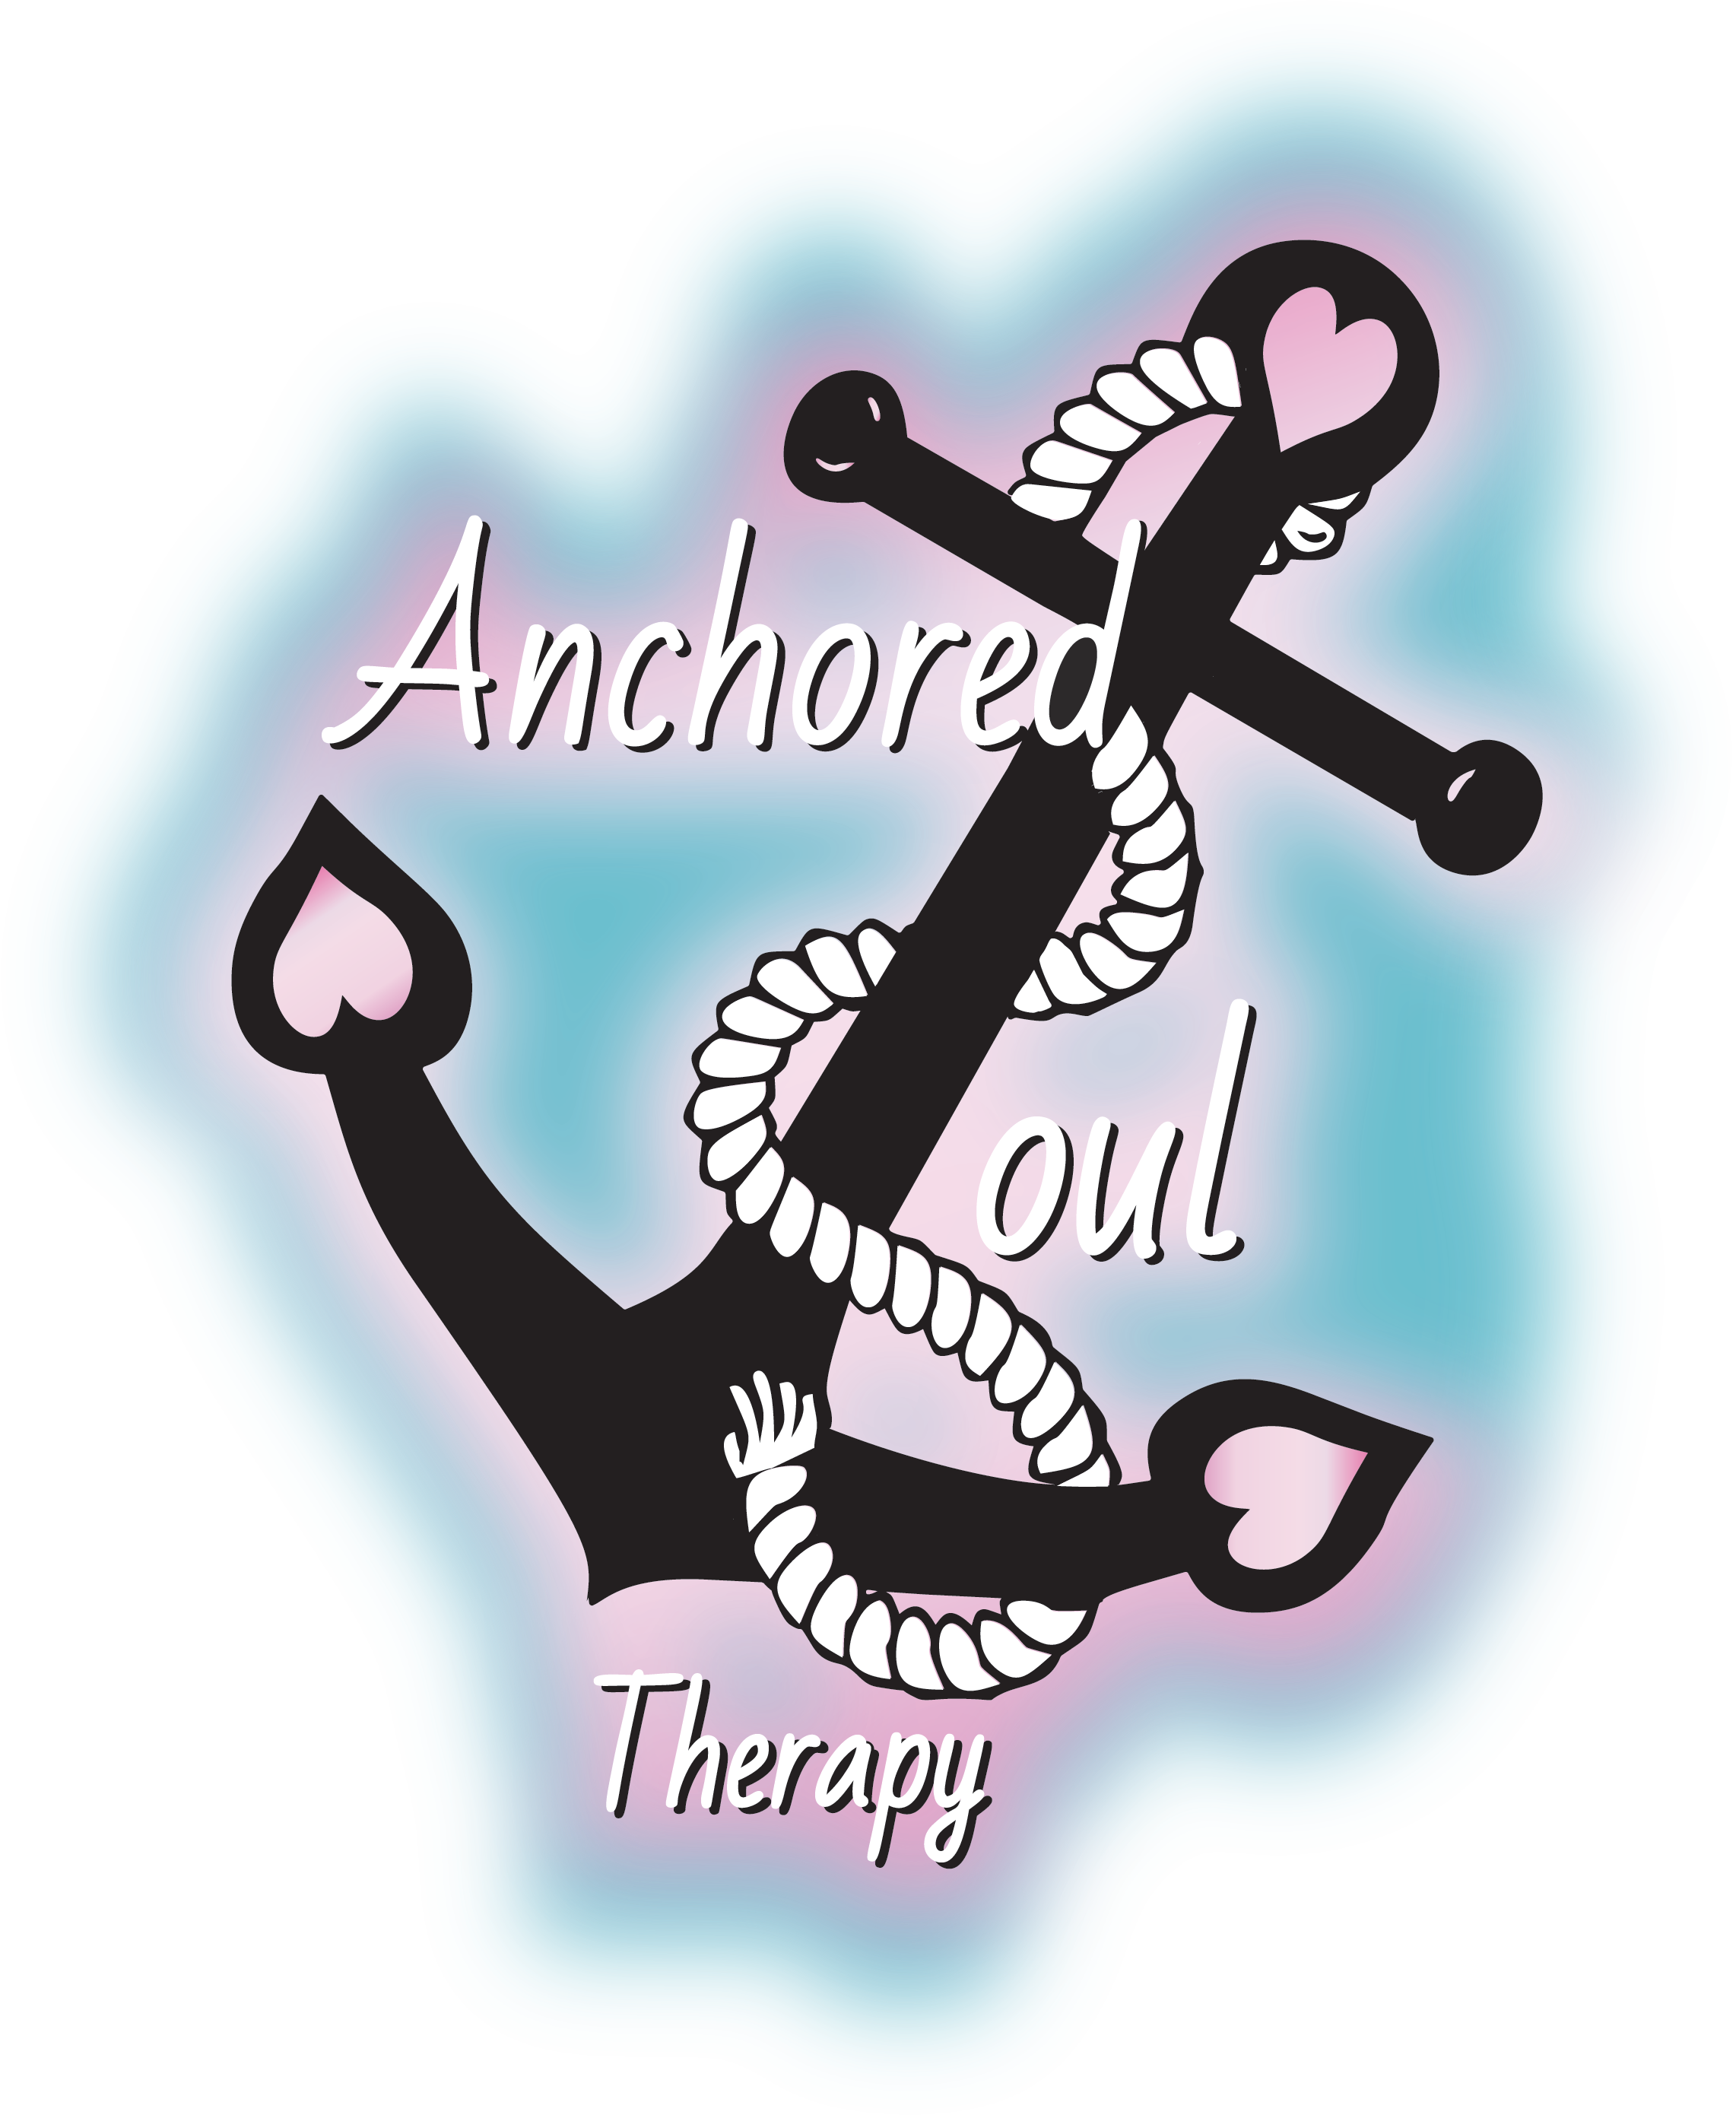 Anchored Soul Therapy